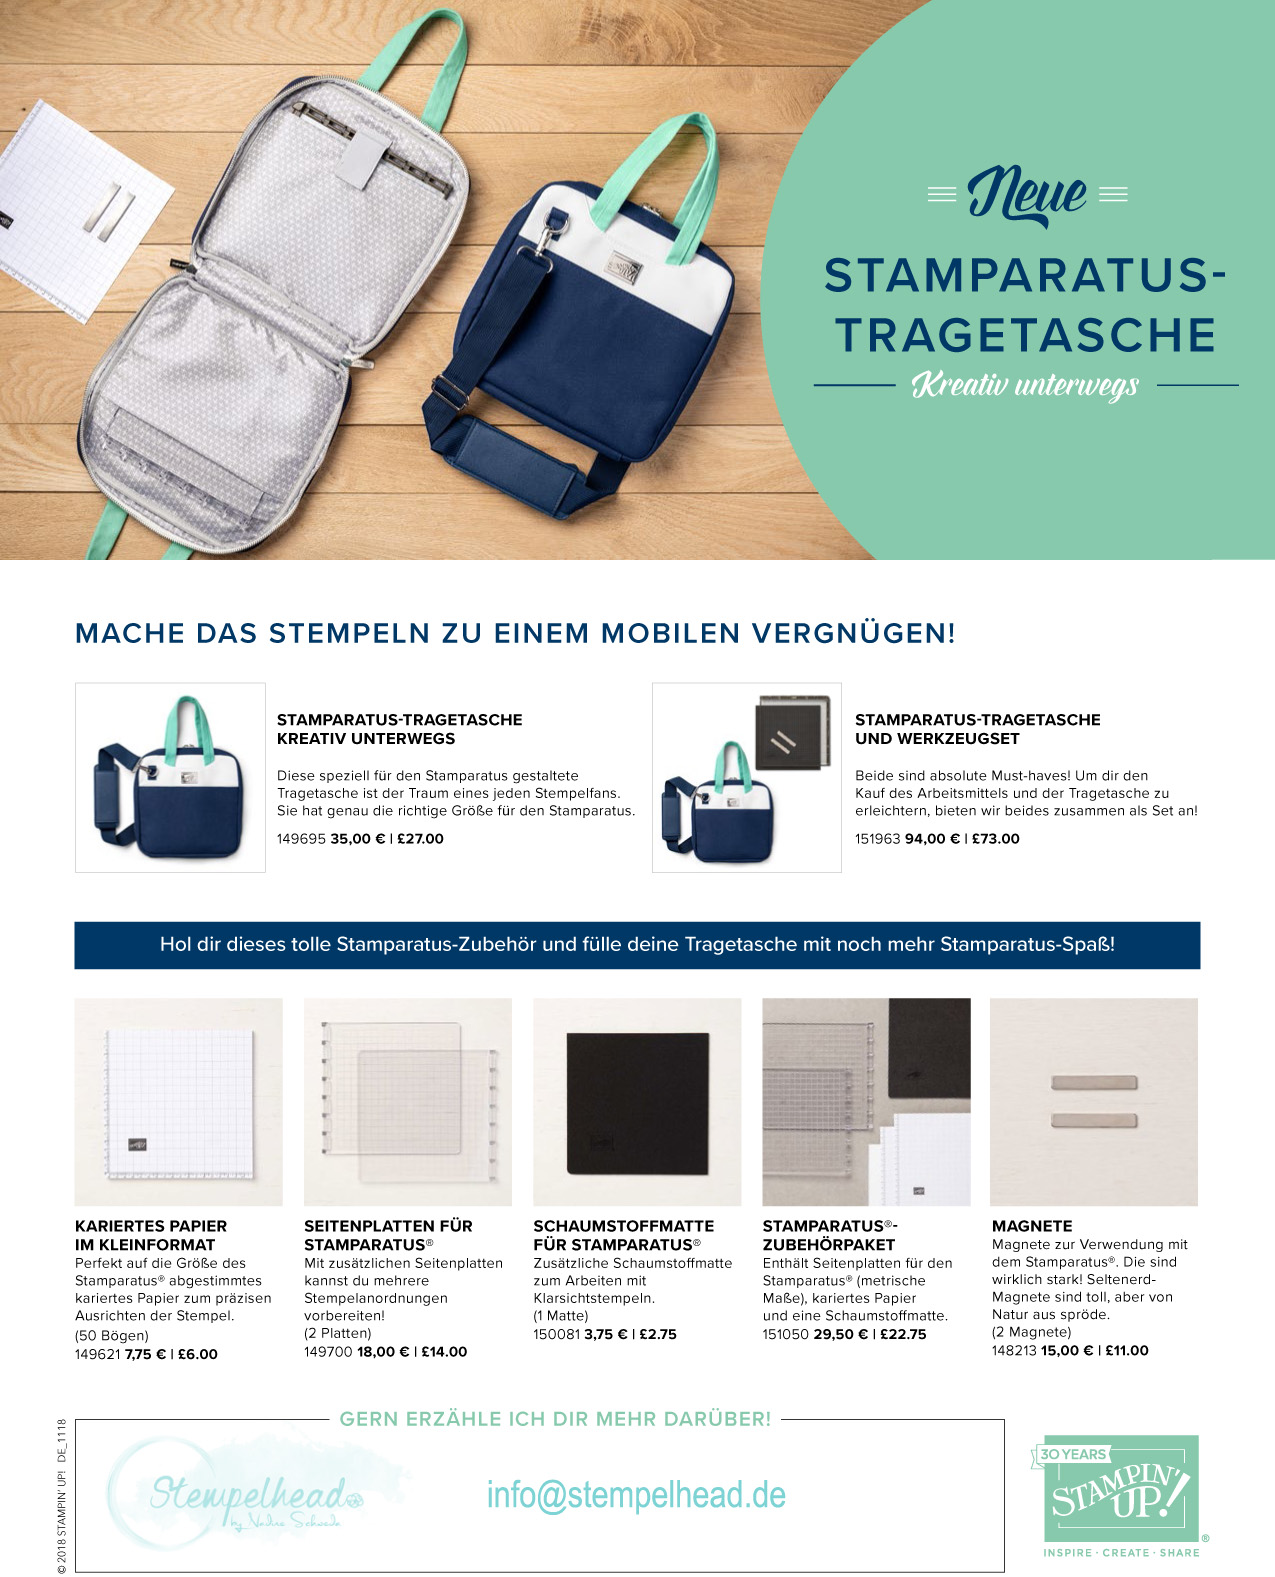 1118_FLYER_STAMPARATUS_BAG_DE Flyer Stamparatus Tragetasche.jpg